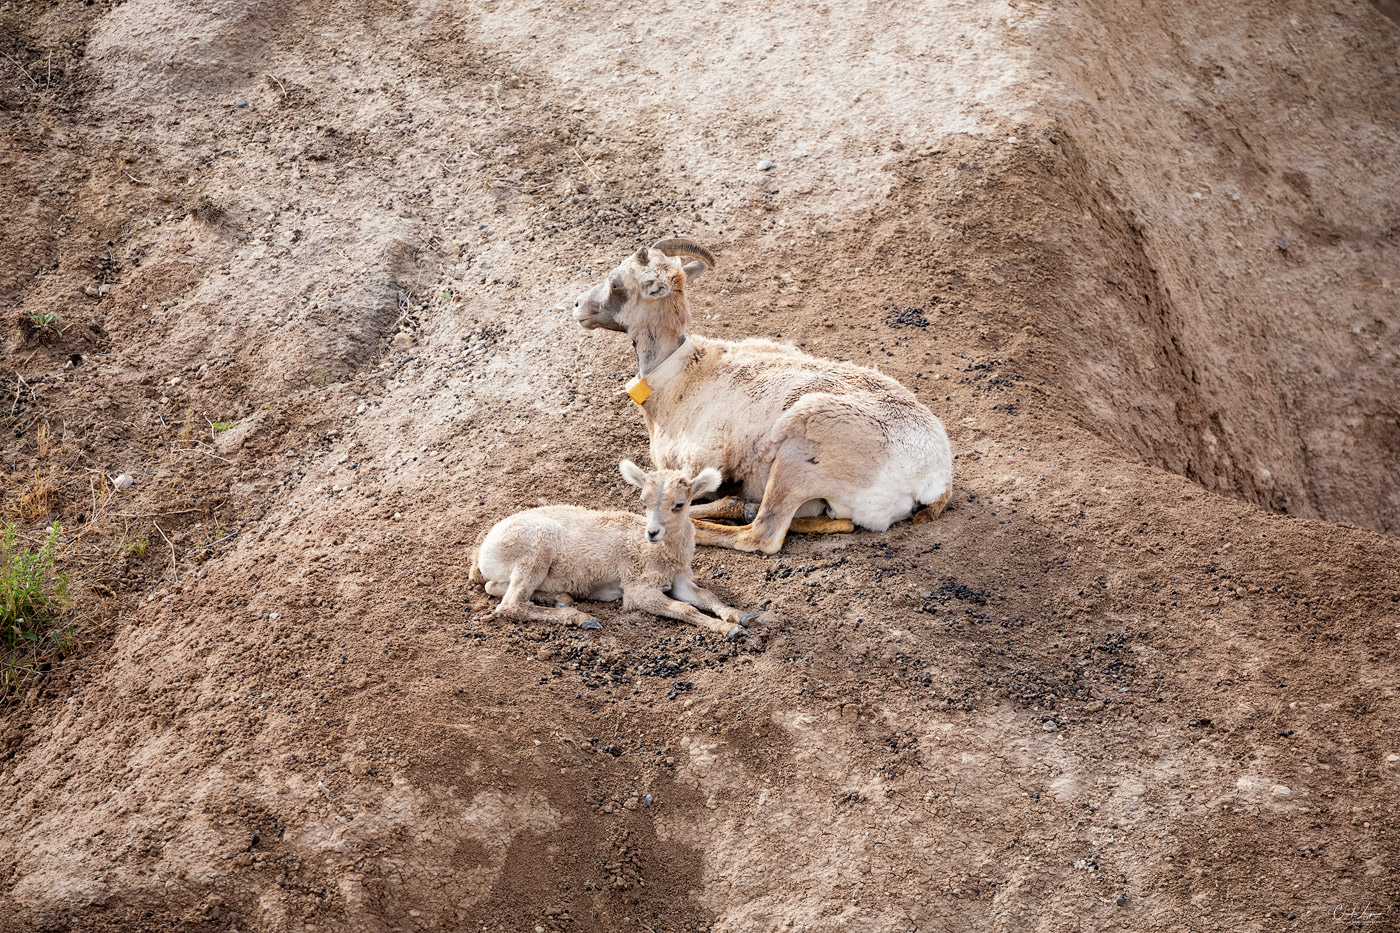 View of goats in Badlands National Park in South Dakota.